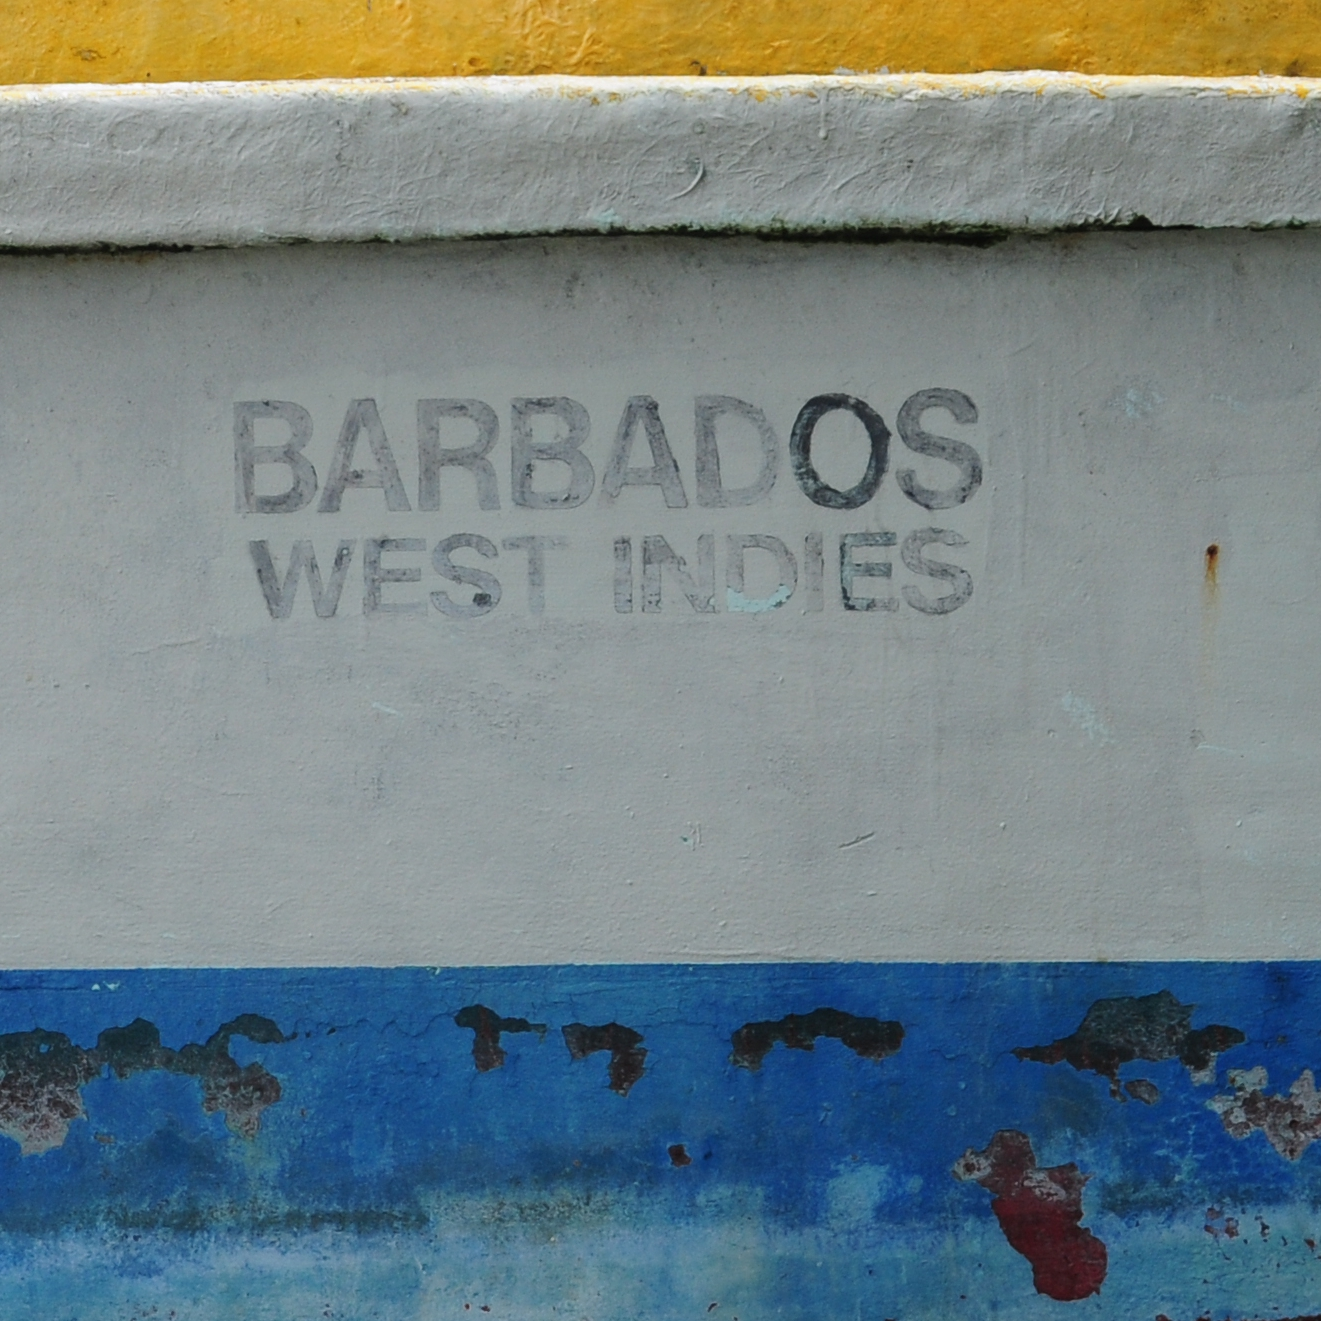 Barbados WI Arthur Road Landscapes.jpg